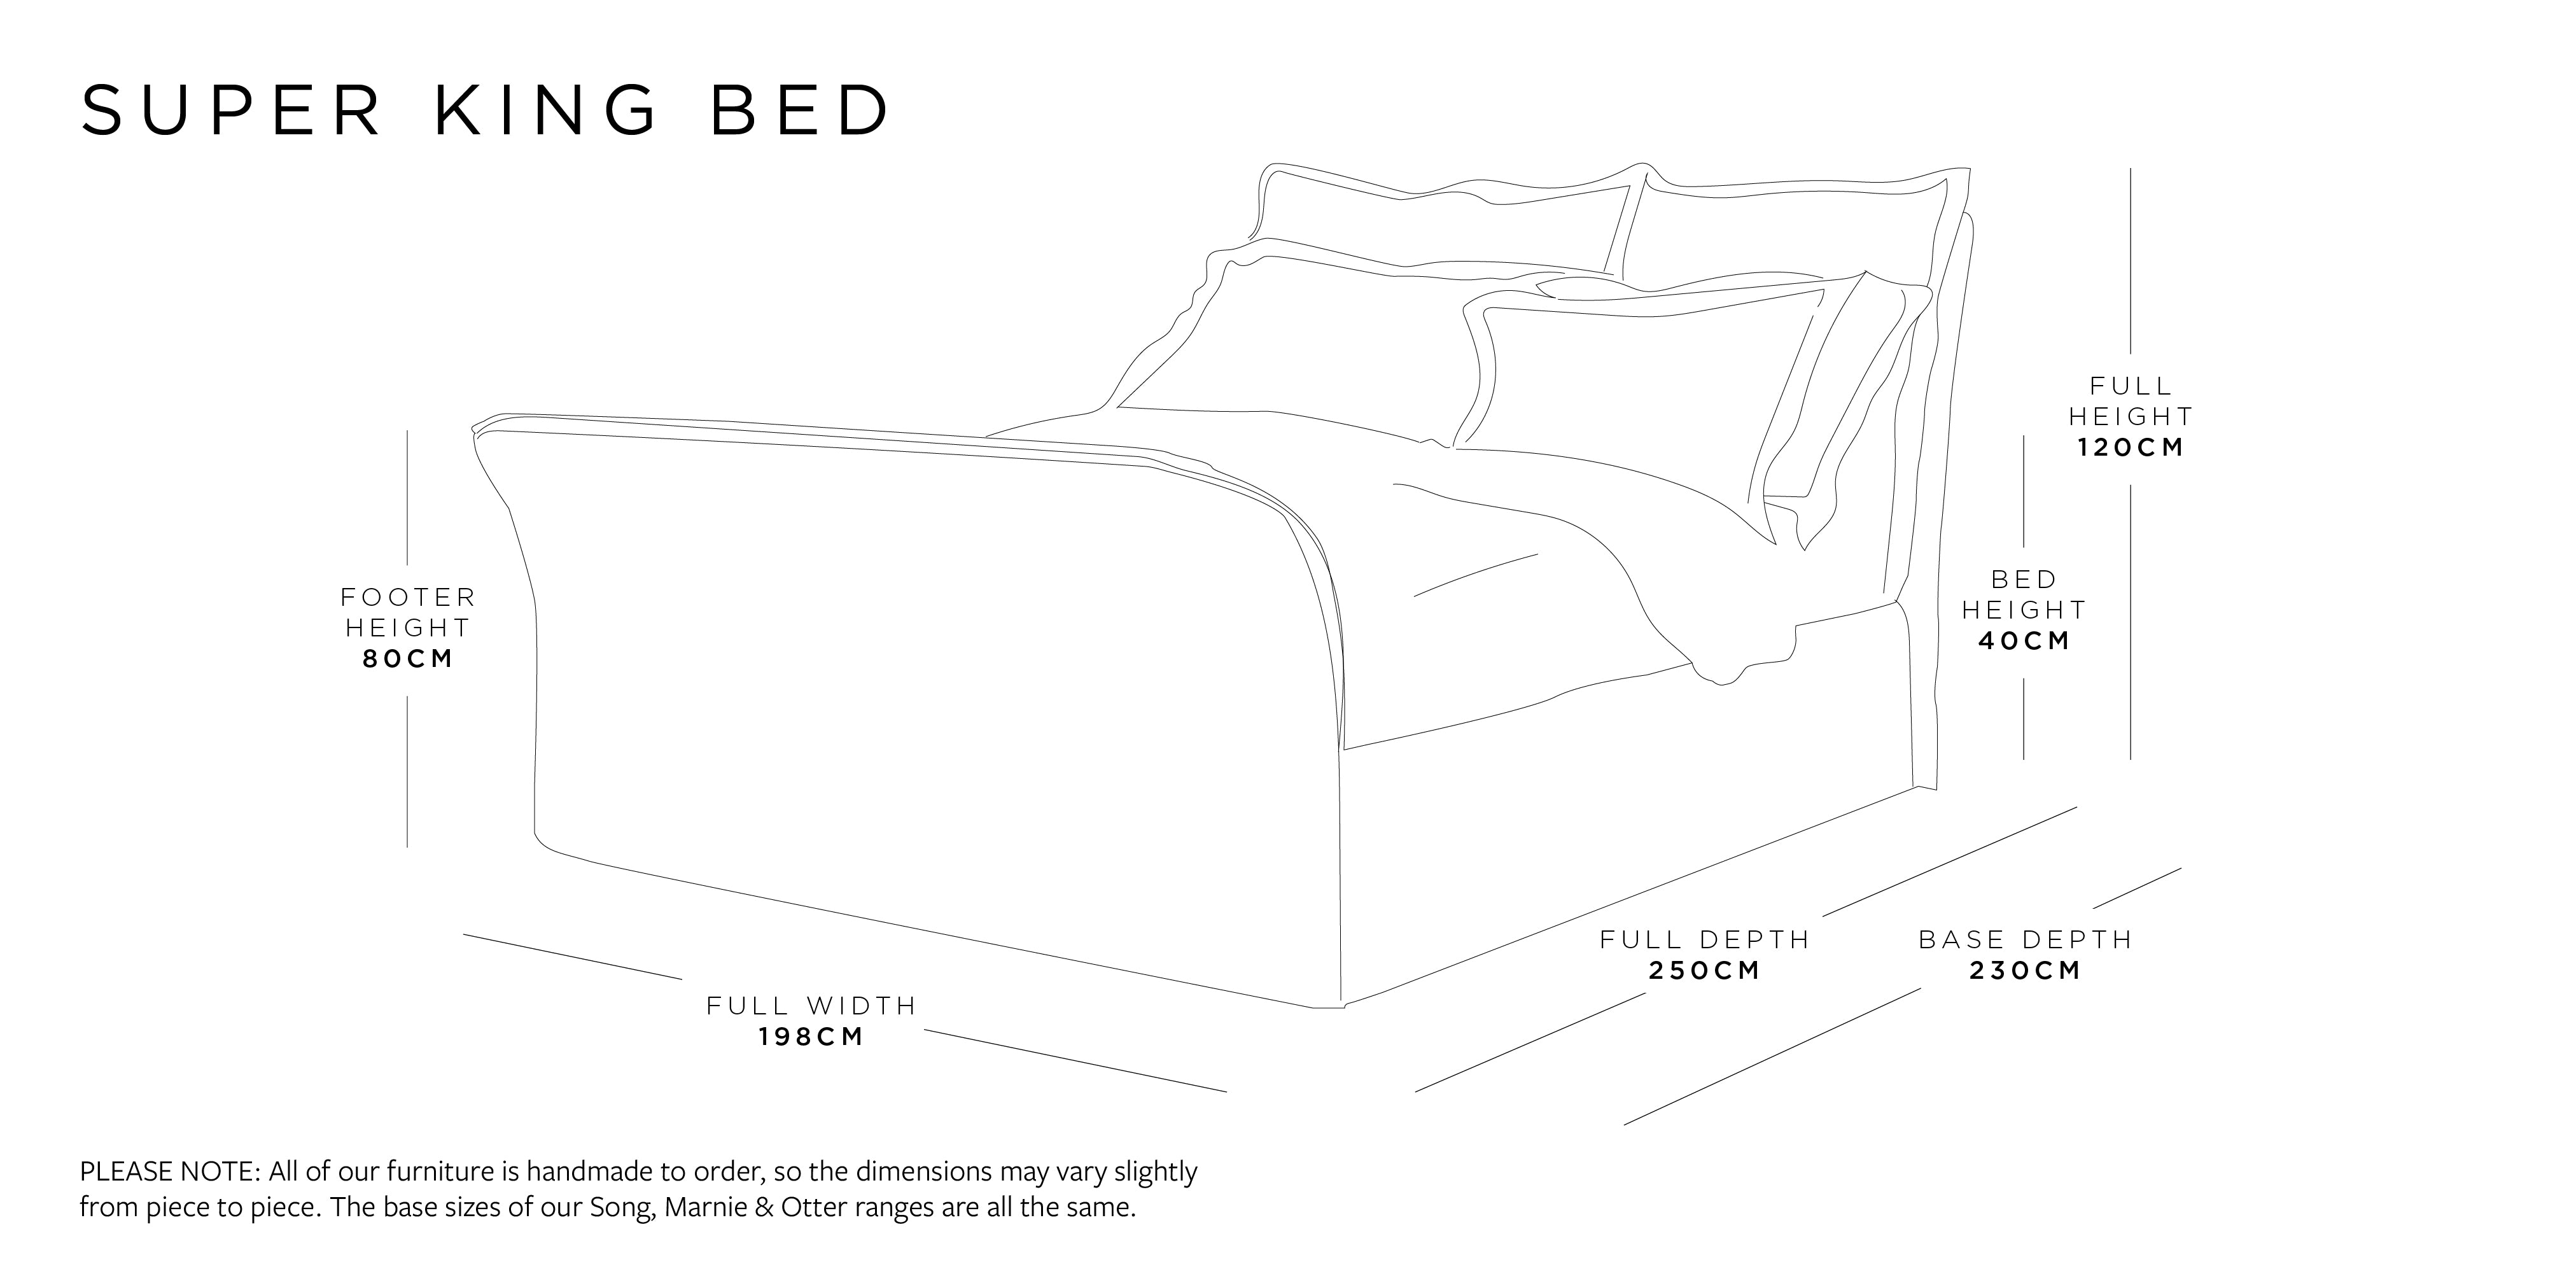 Super King Bed Dimensions